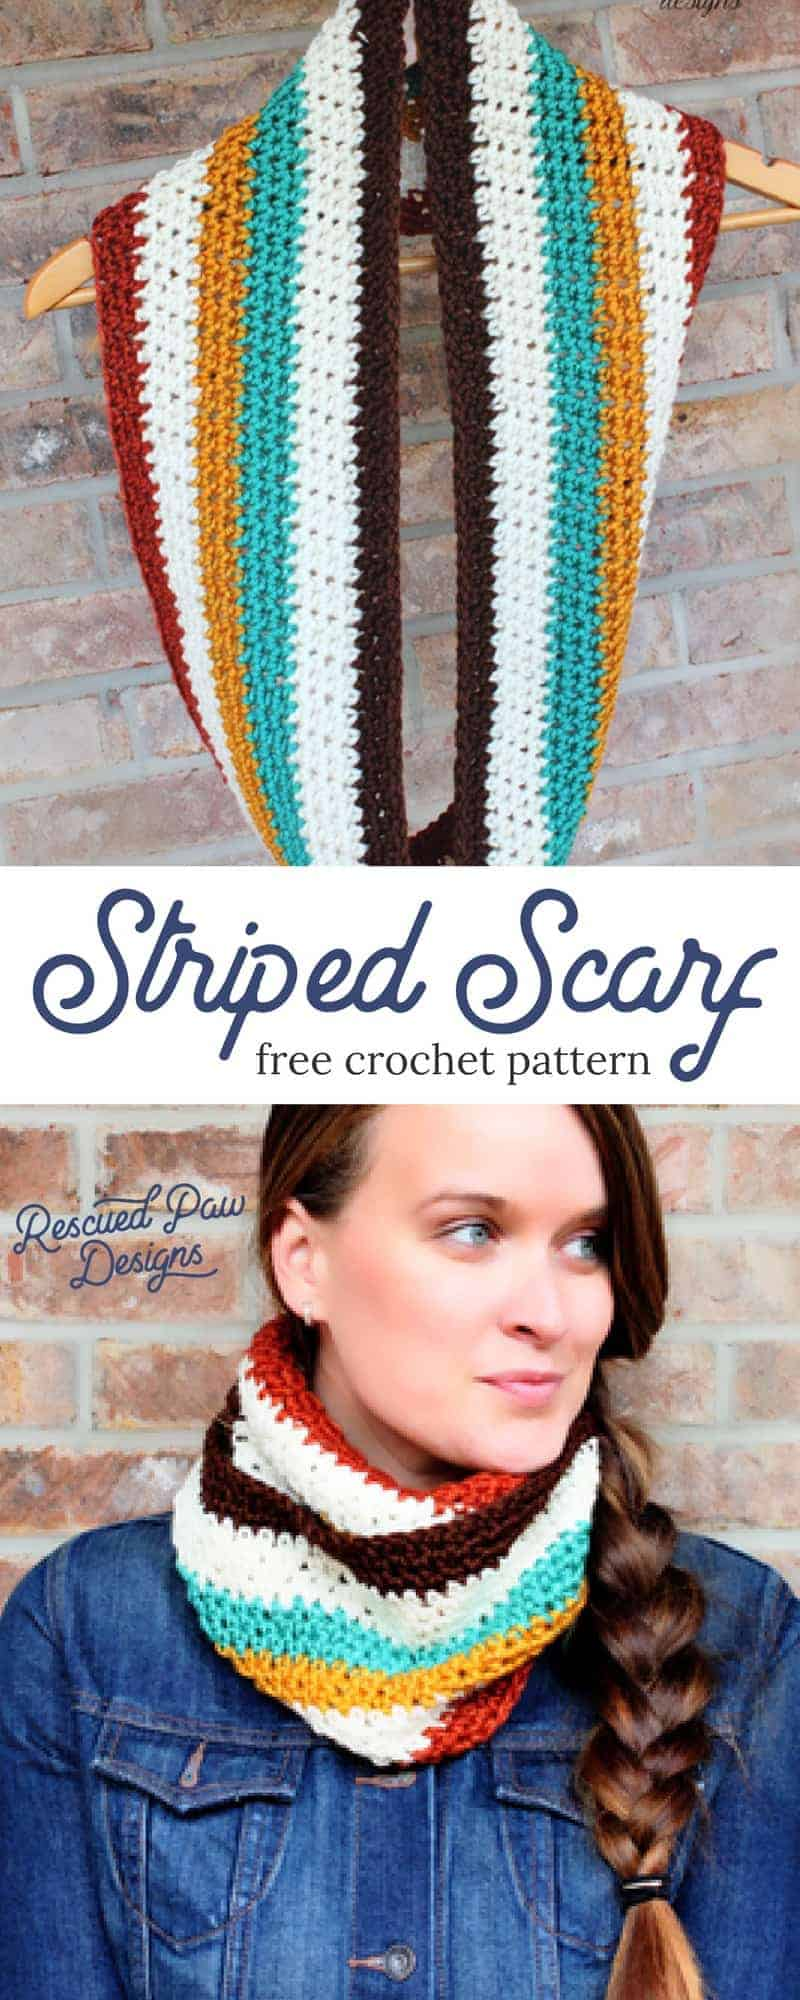 How to crochet a striped scarf